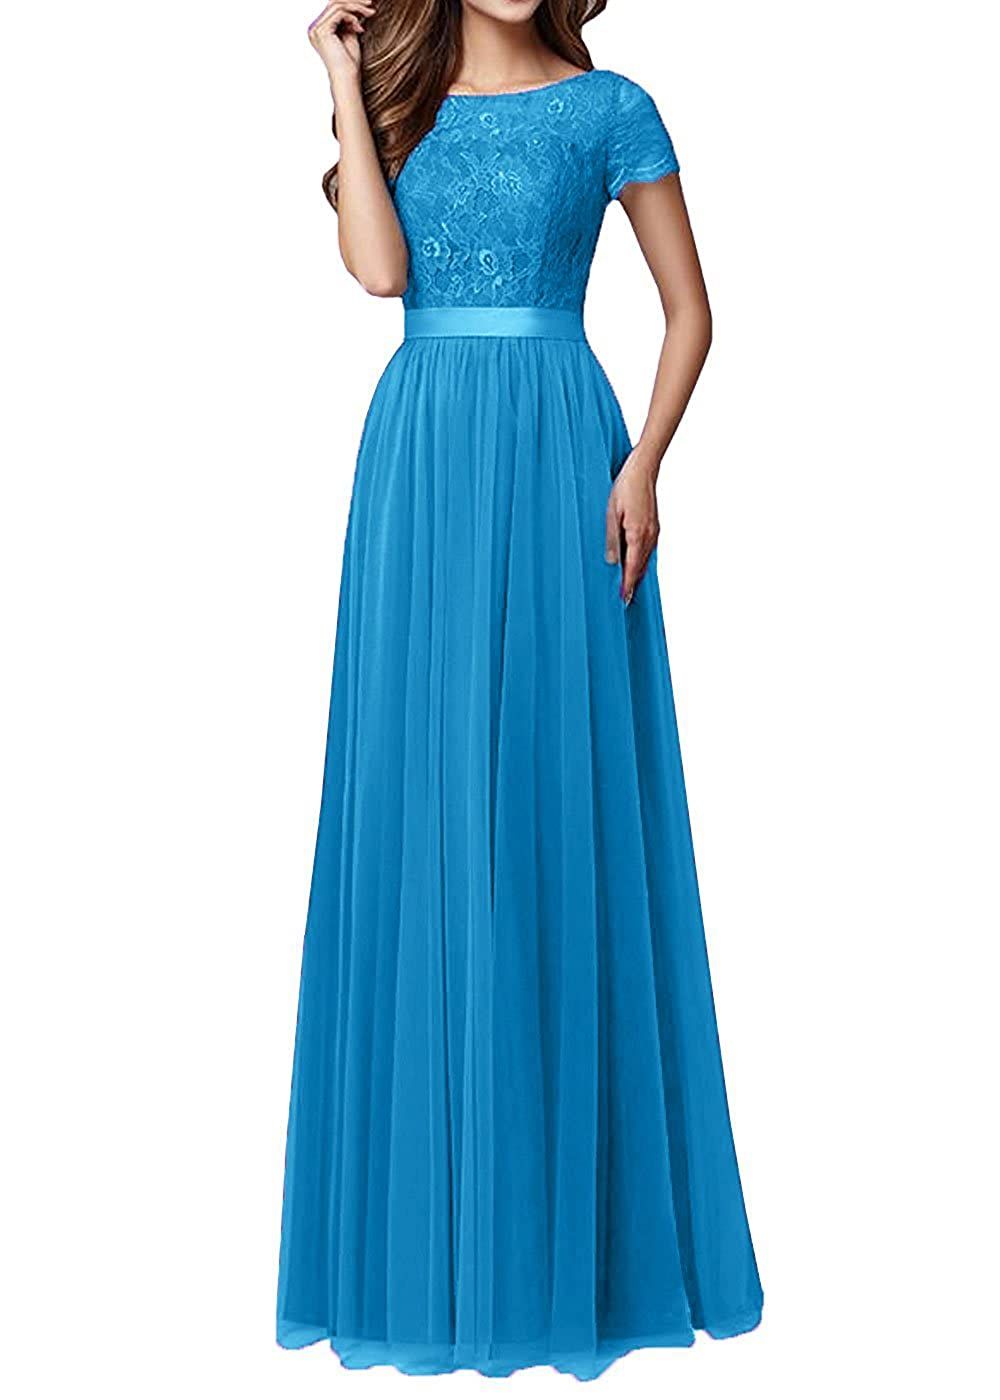 bluee Pretygirl Womens Tulle Long Bridesmaid Dress Sleeves Lace Prom Evening Dresses